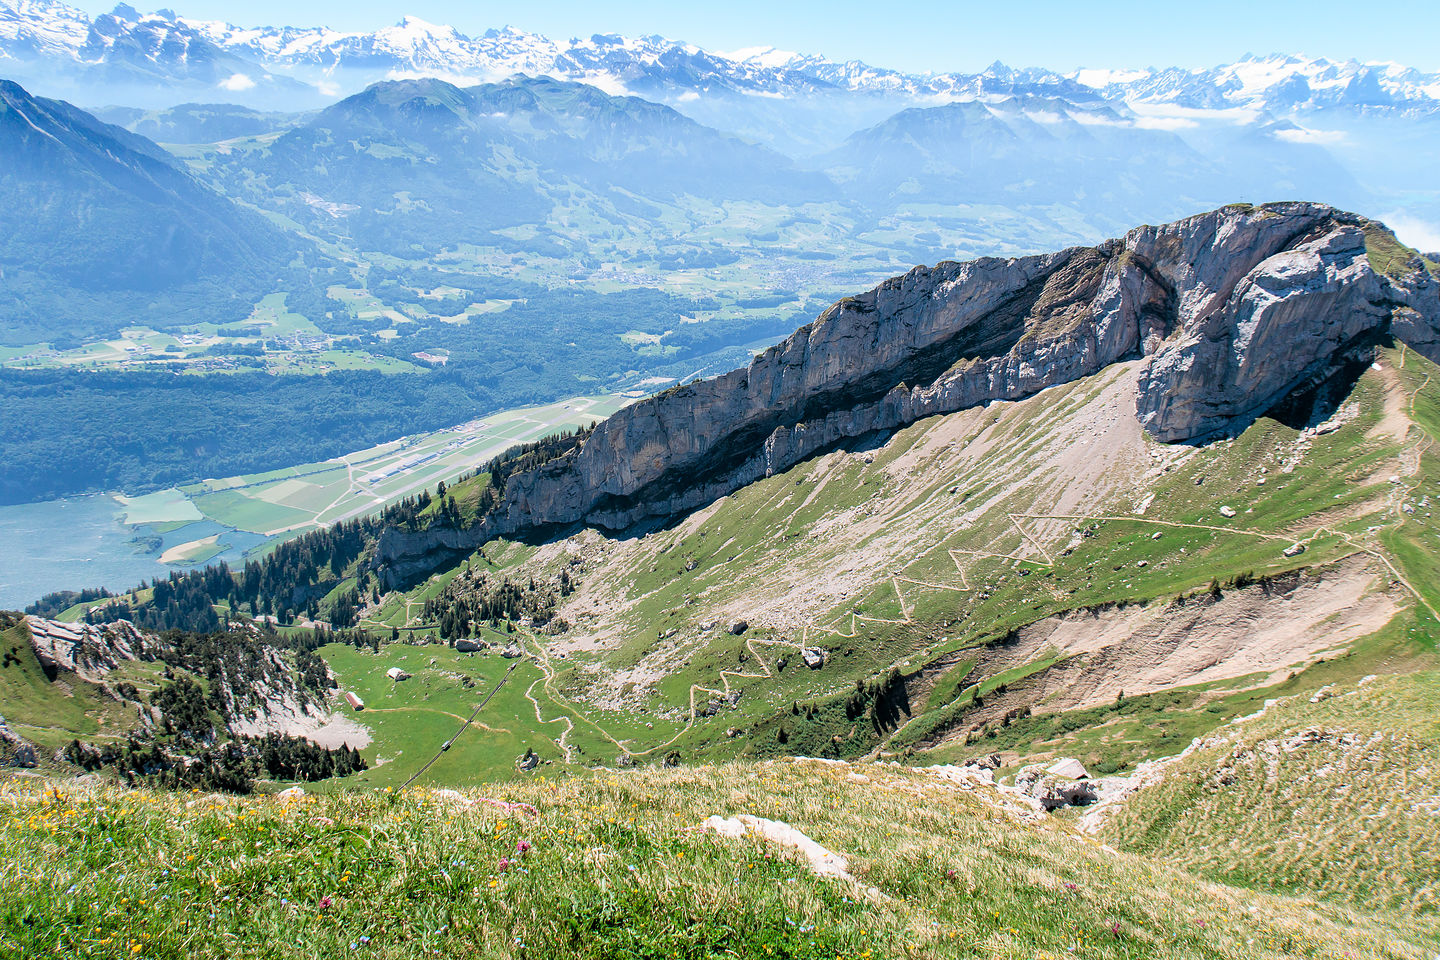 The switchbacks up Mt. Pilatus